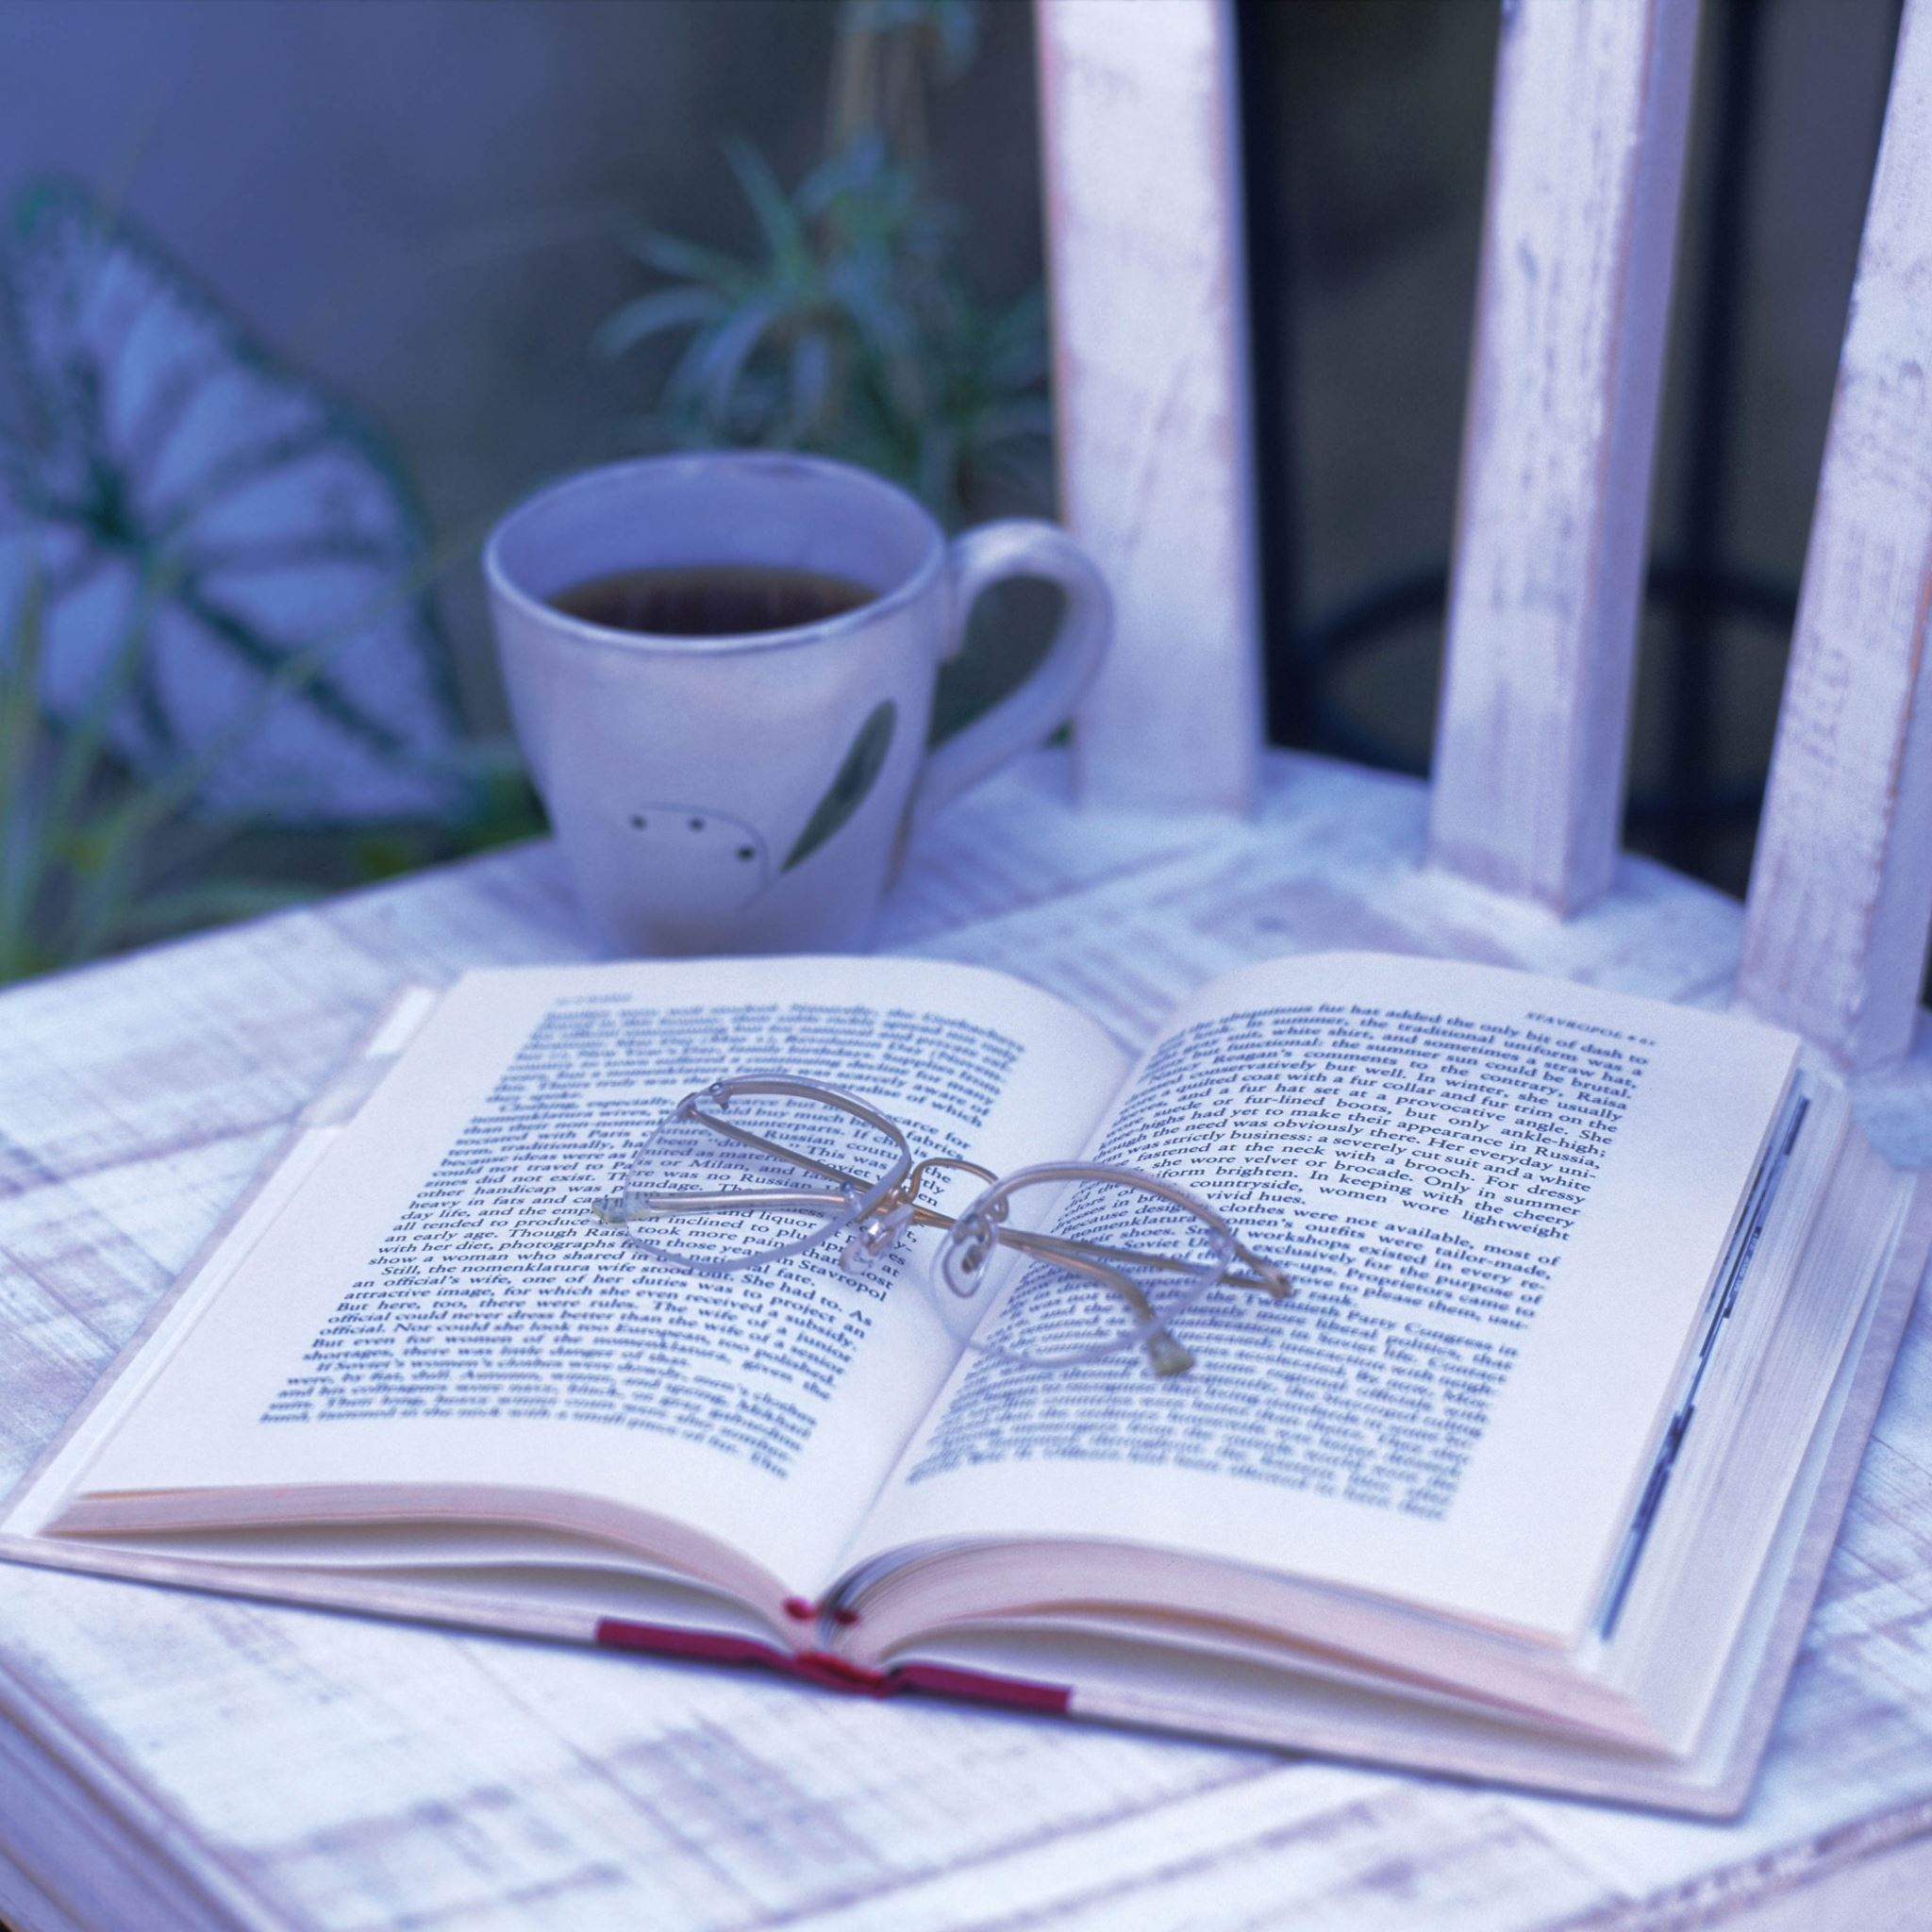 book_glasses_tea_chair_cup_garden